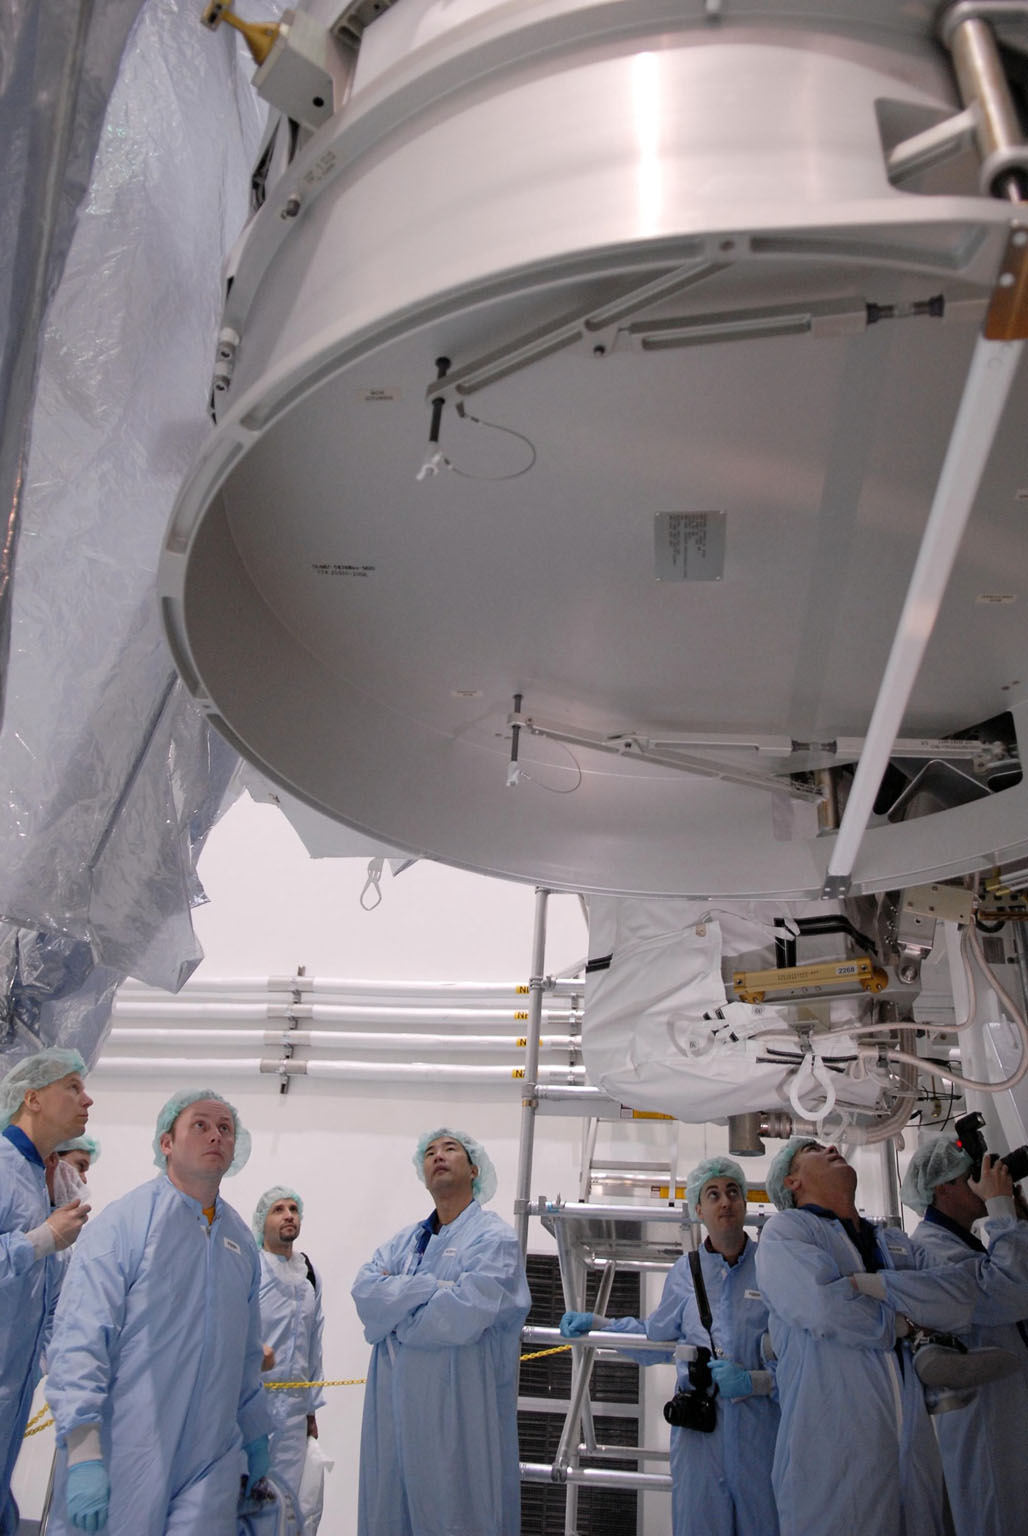 KENNEDY SPACE CENTER, FLA. -- In the foreground, astronauts Tim Kopra, Michael Fincke, Soichi Noguchi, and Salizhan Sharipov (arms foldled) peer up at the Node 2 module in the Space Station Processing Facility. They and other astronauts are familiarizing themselves with the various elements to be installed on the International Space Station on future spaceflights. With construction of the Space Station the primary focus of future shuttle missions, astronaut crews will be working with one or more of the elements and hardware already being processed in the SSPF. Photo credit: NASA/Kim Shiflett